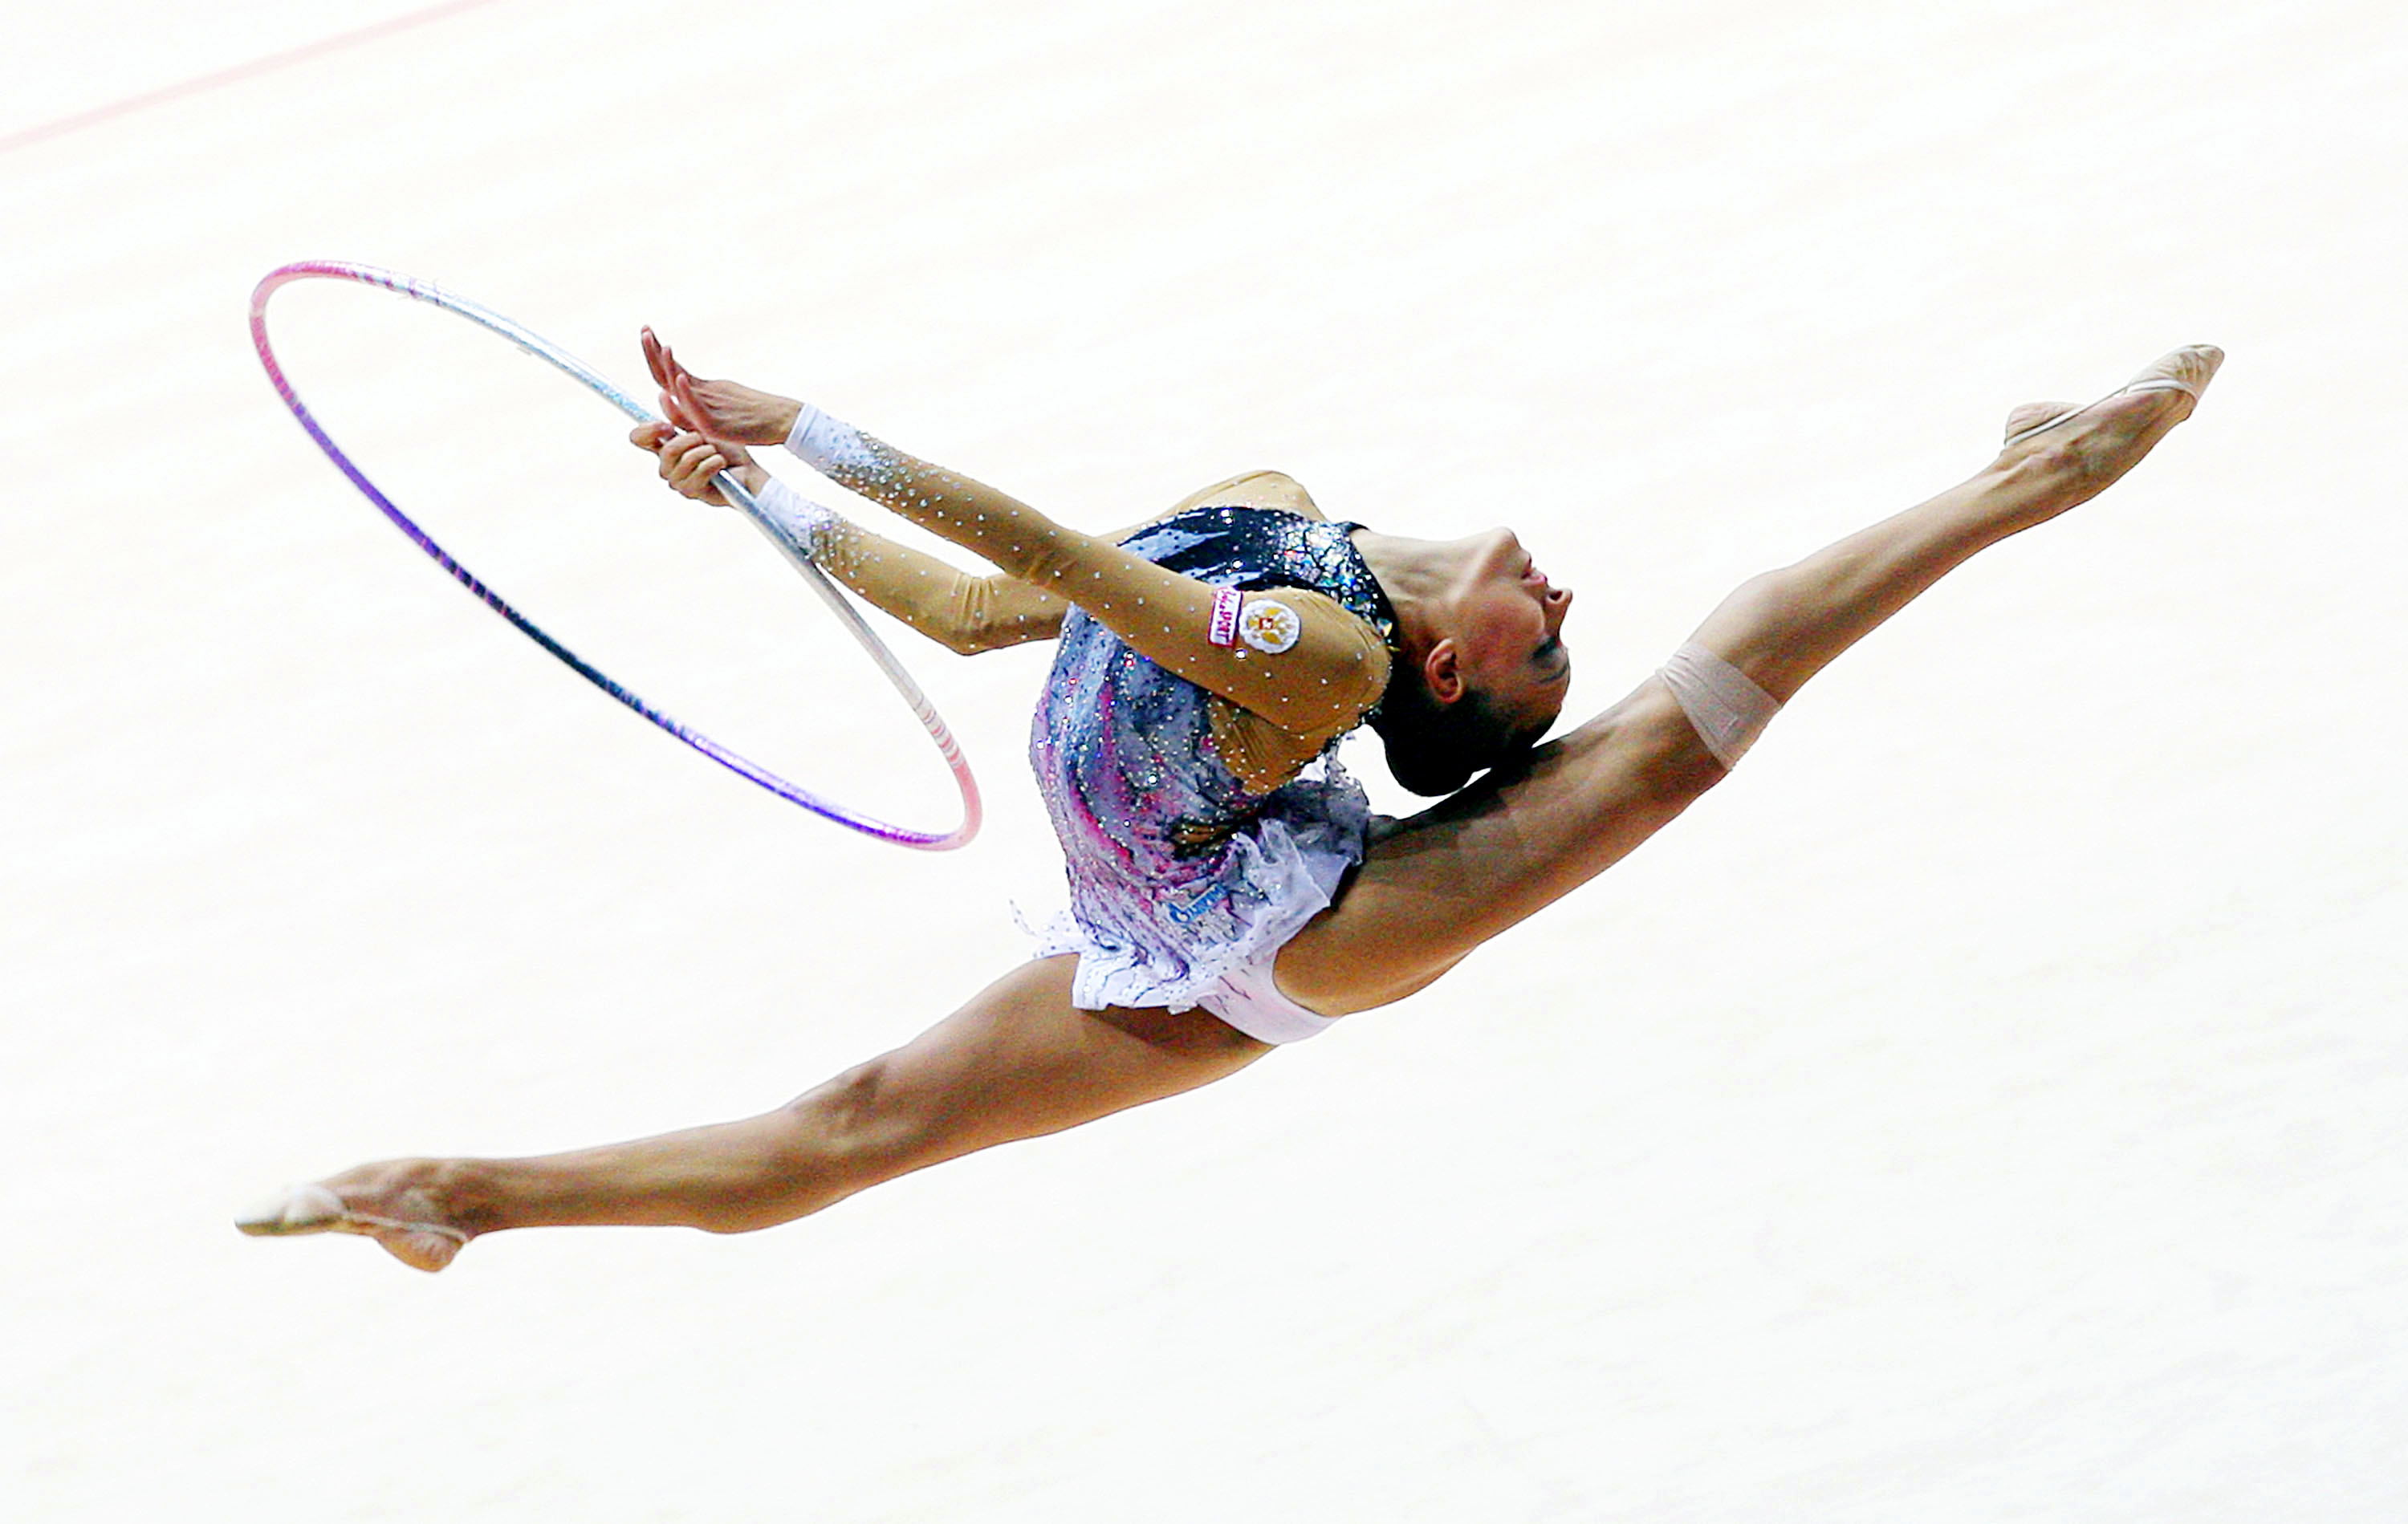 a look at the flexible sport of rhythmic gymnastics Sports that use dance or gymnastics being flexible and having upper strength are important for dance and gymnastics related articles 1 [easiest way] | what is the easiest way to do a split or learn how to do one 2 [rhythmic gymnastics] | different formations of rhythmic gymnastics 3.